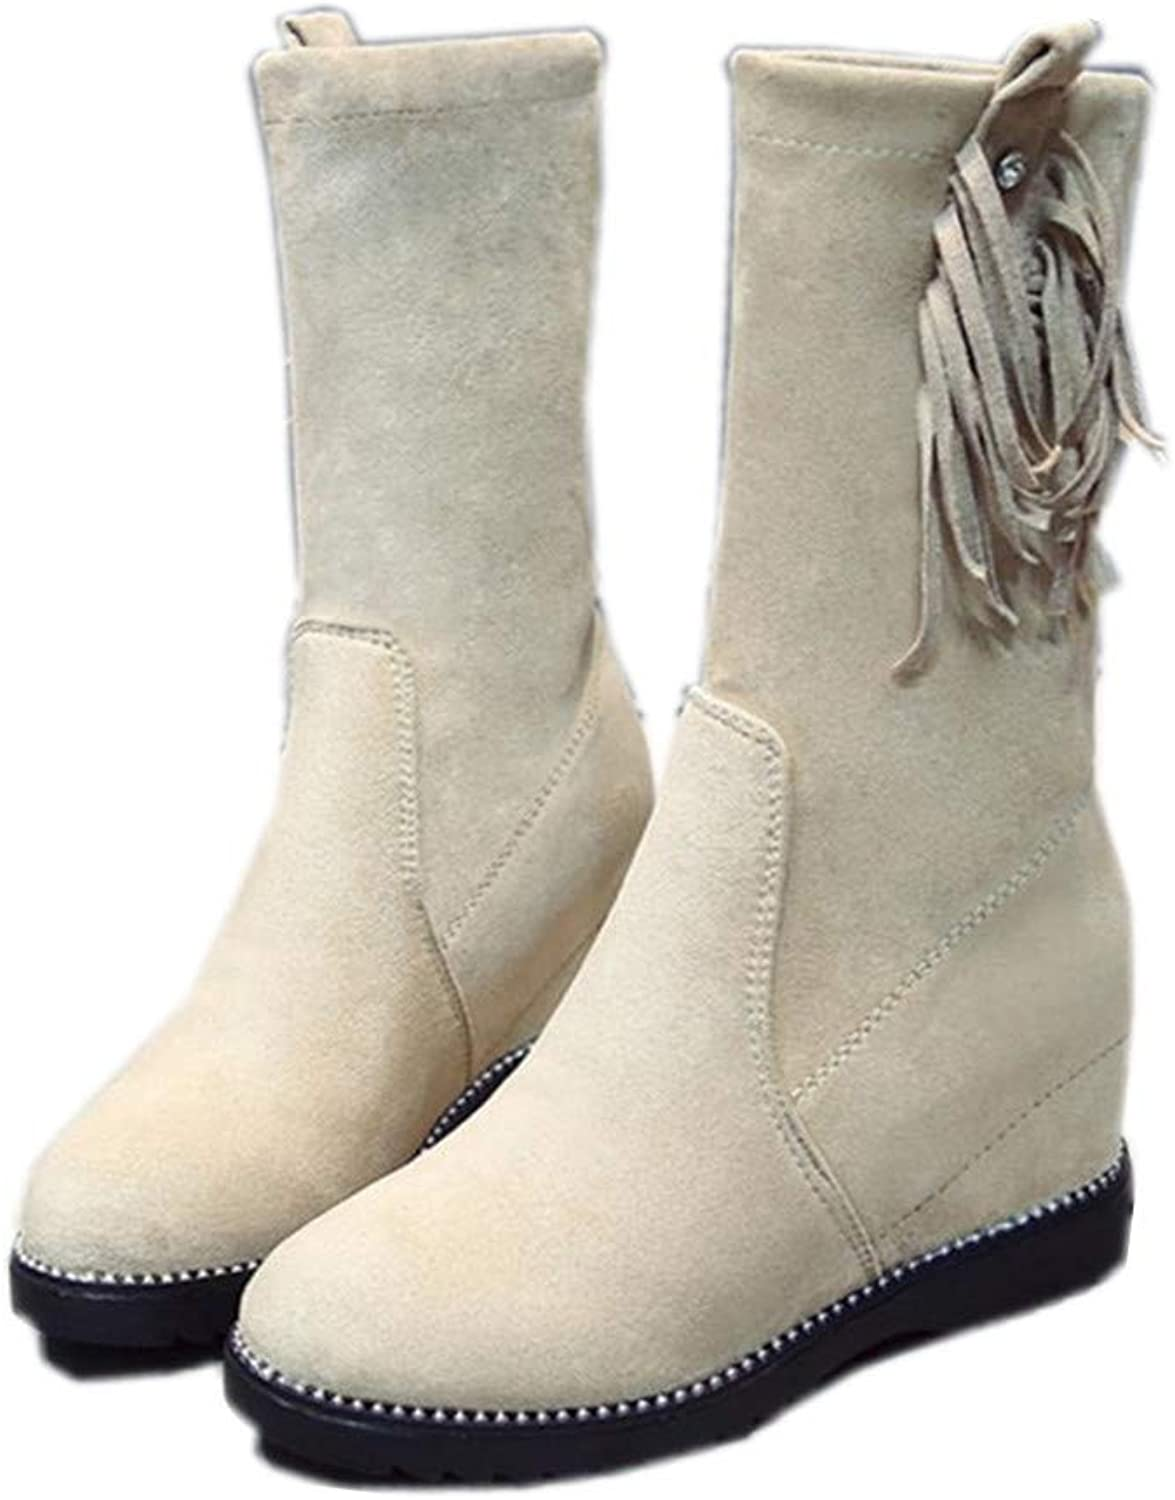 Gusha Women's Round Toe Boots Tassels Boots Winter Casual Boots